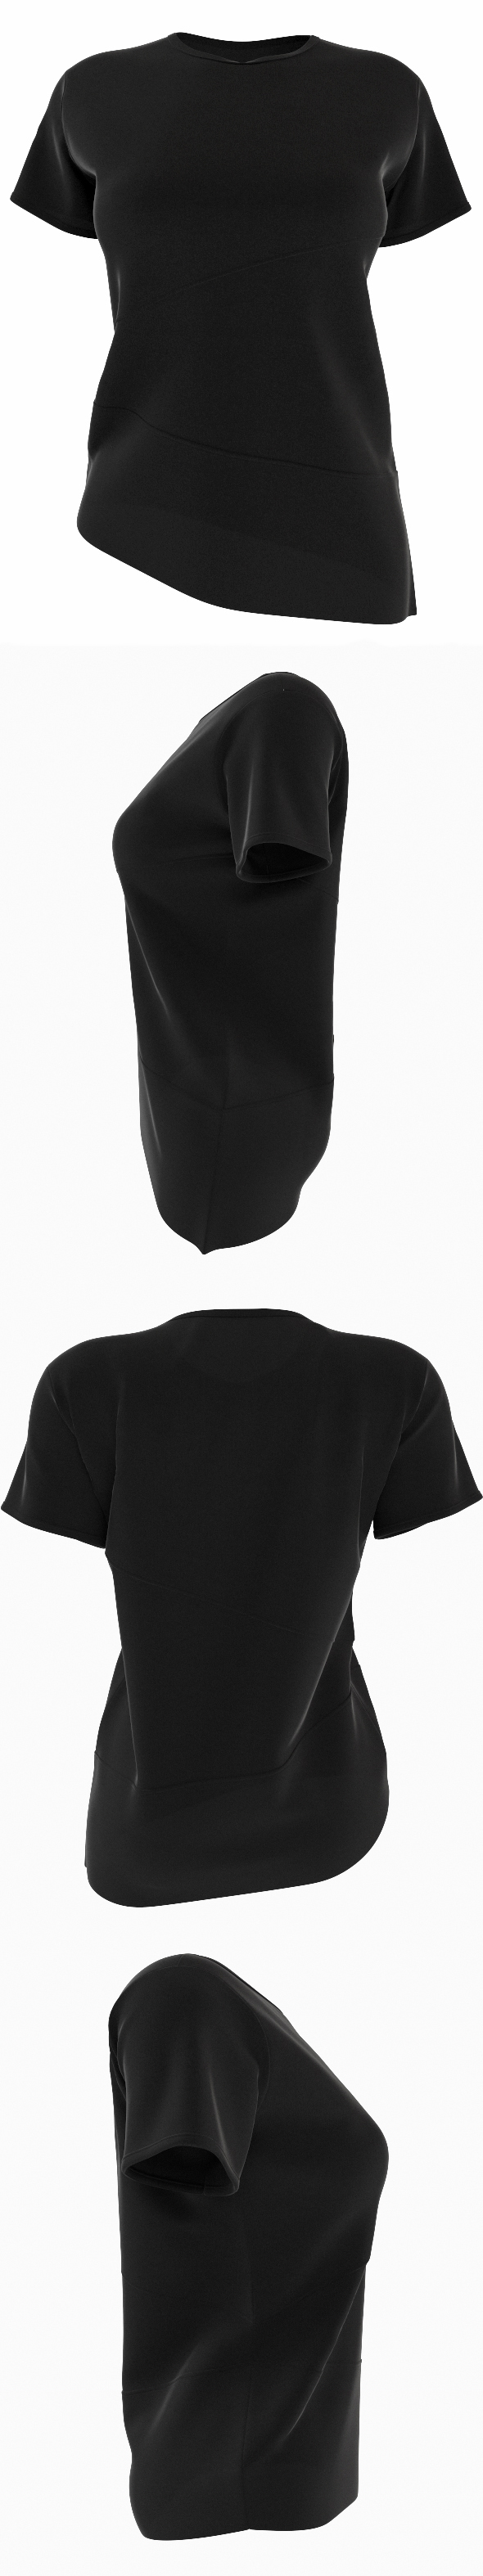 T-shirt - 3DOcean Item for Sale